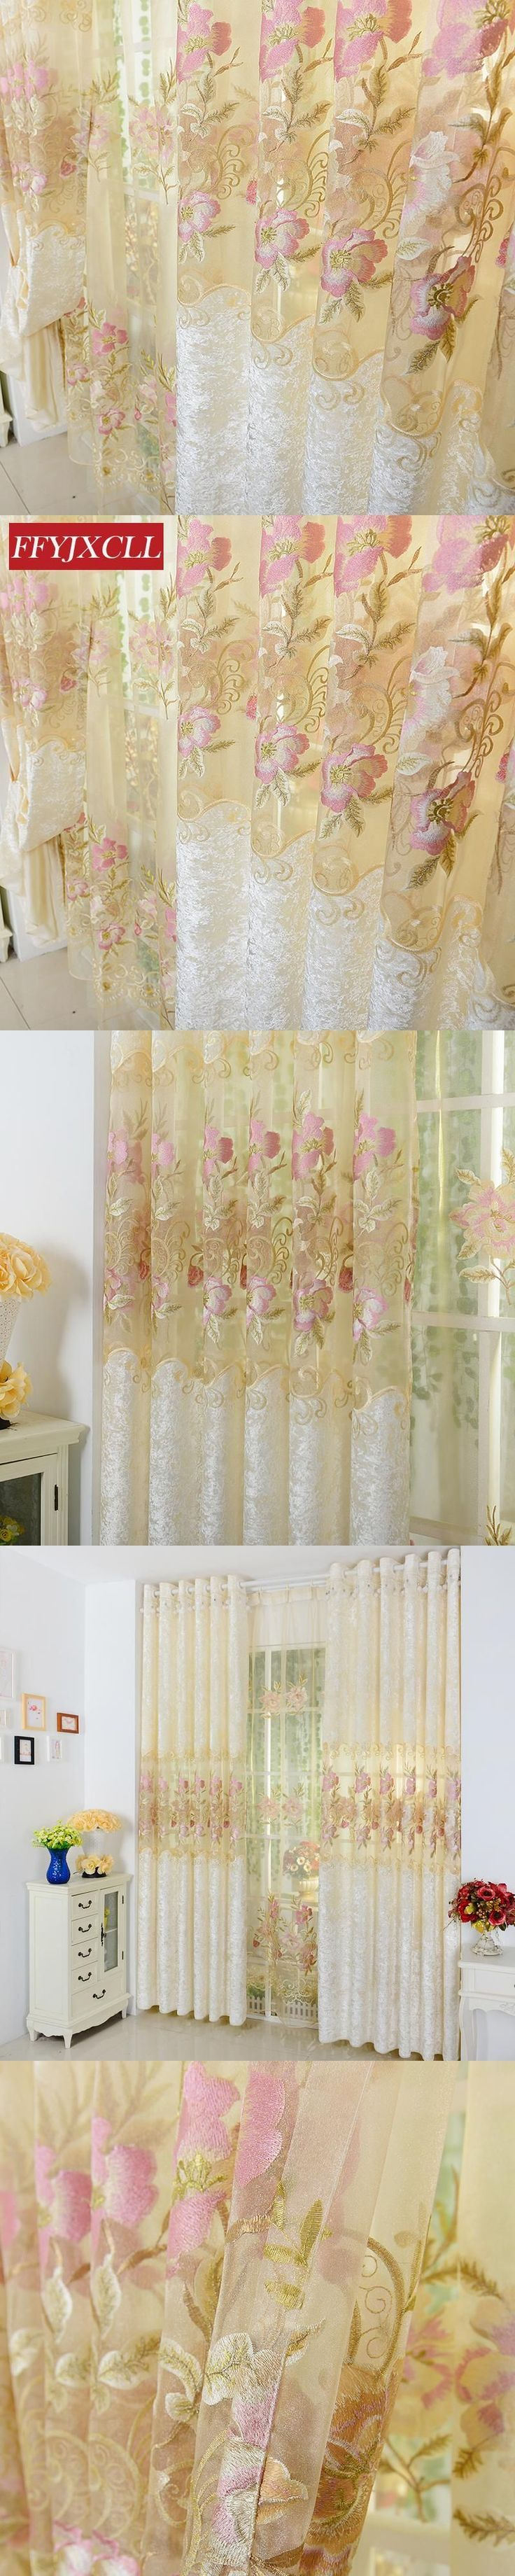 Home Europe Design Floral Tulle Curtains For Living Room/ Bedroom Embroidered Blackout Curtains Window Treatment /drapes